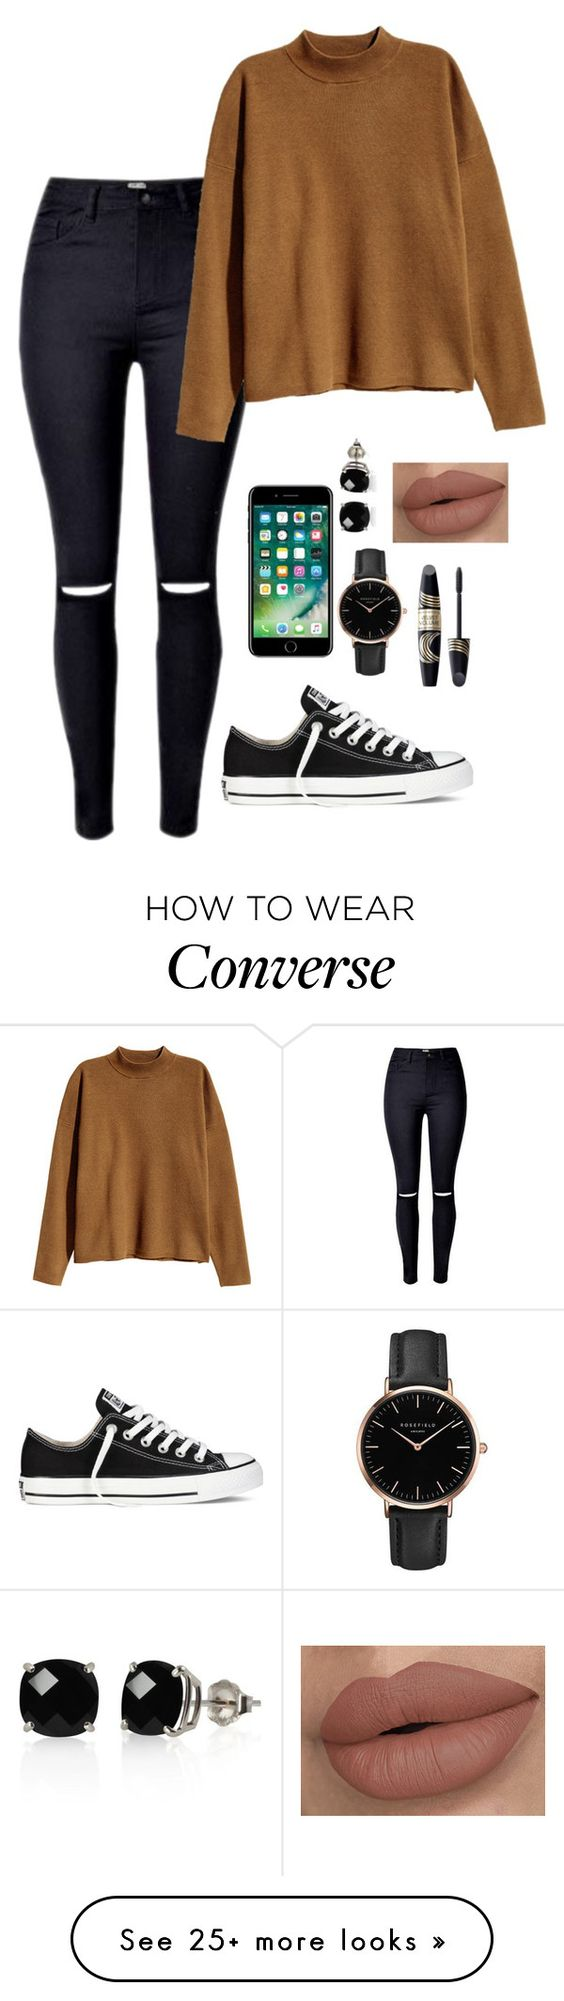 """""""'Dinner With David' - Mariana"""" by briquel13287 on Polyvore featuring H&M, Converse, Topshop, Belk & Co. and Max Factor"""